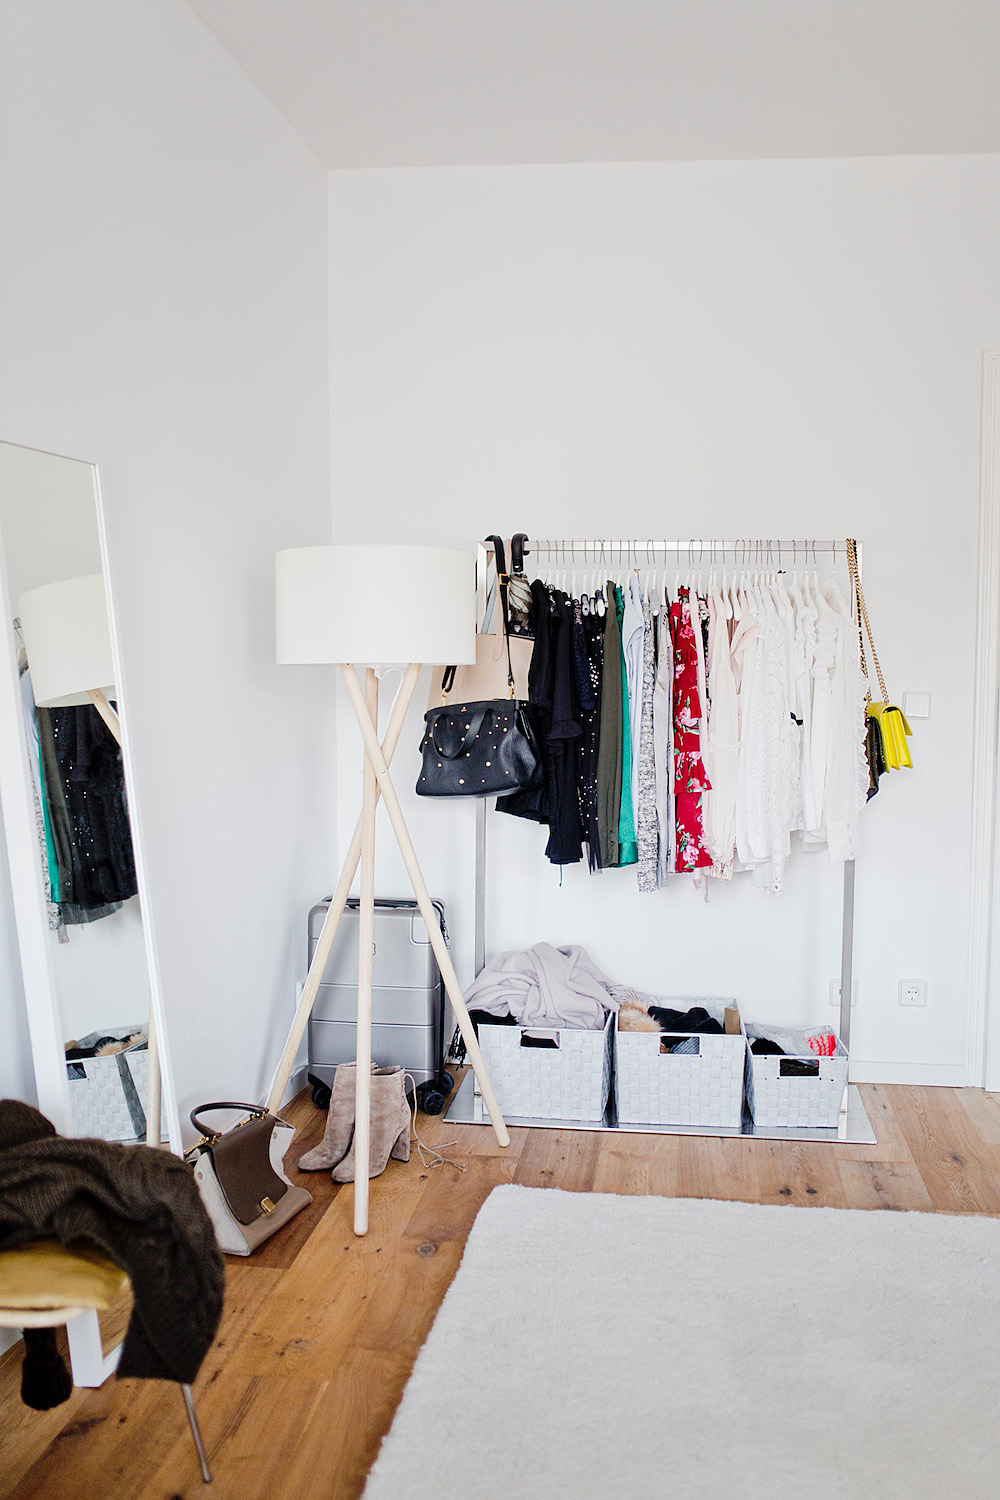 Inspirationen Wohnen wohnen in berlin living in berlin wardrobe inspiration cult